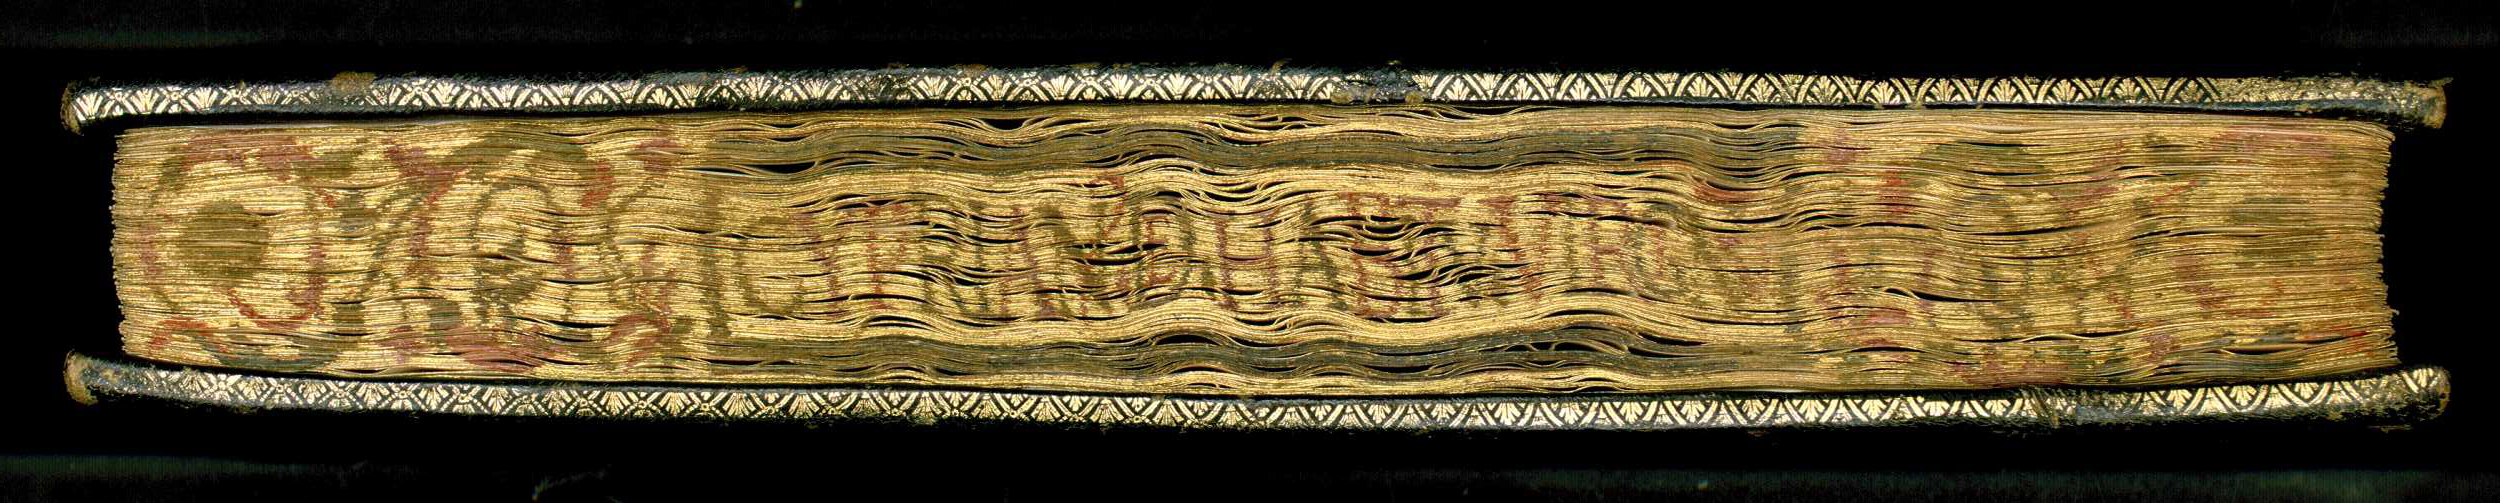 Fore-edge of St. Cyprian corvina, decorated with gilding and painting. This edge type was characteristic of part of the corvinas that had been bound in the Buda workshop. Budapest, NSZL, OSZK Cod. Lat. 529